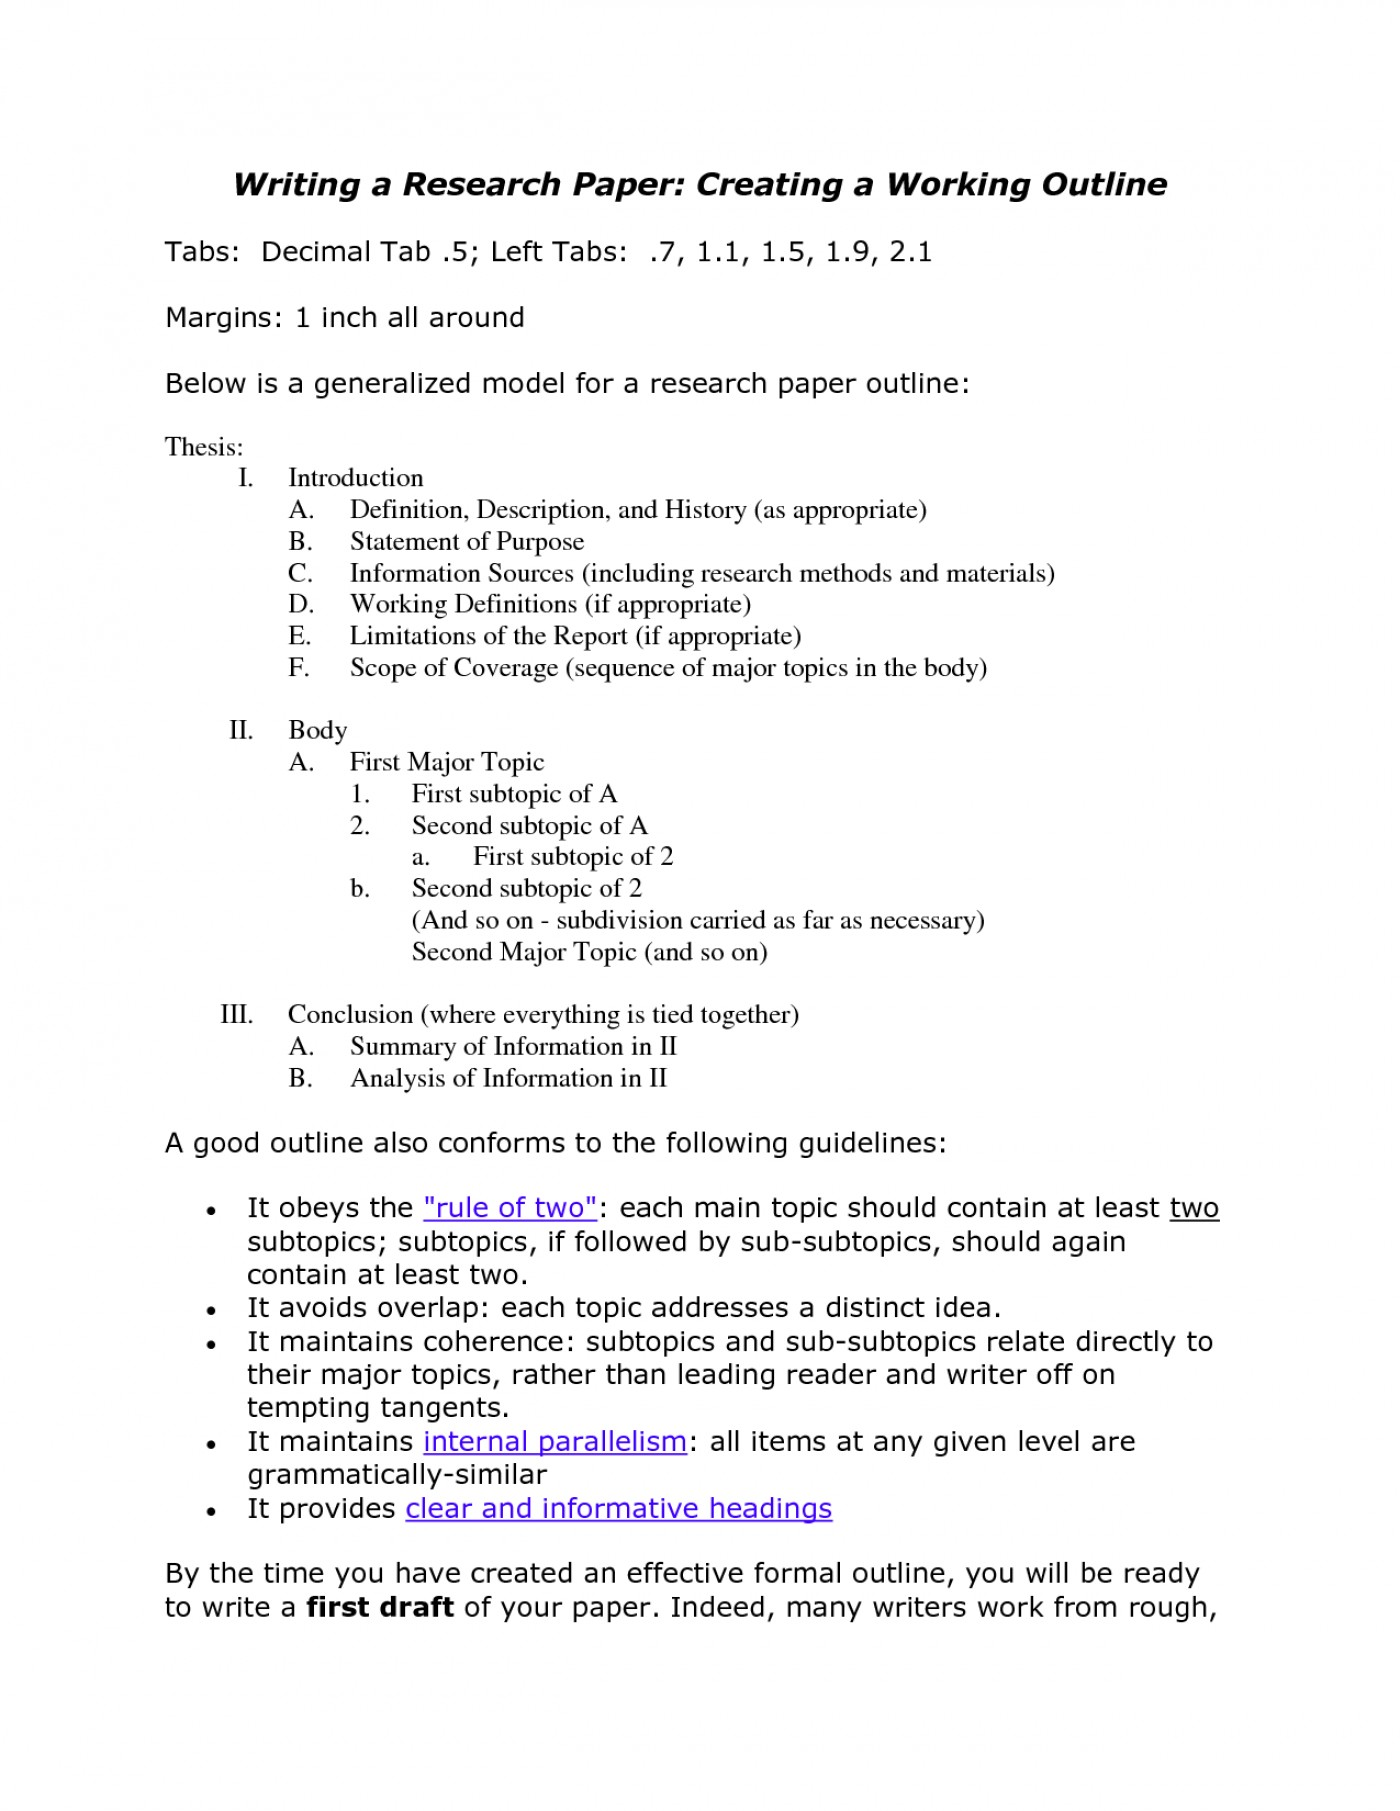 006 Working Outline For Research Paper Example 477670 Top Formal How To Write A Template 1400